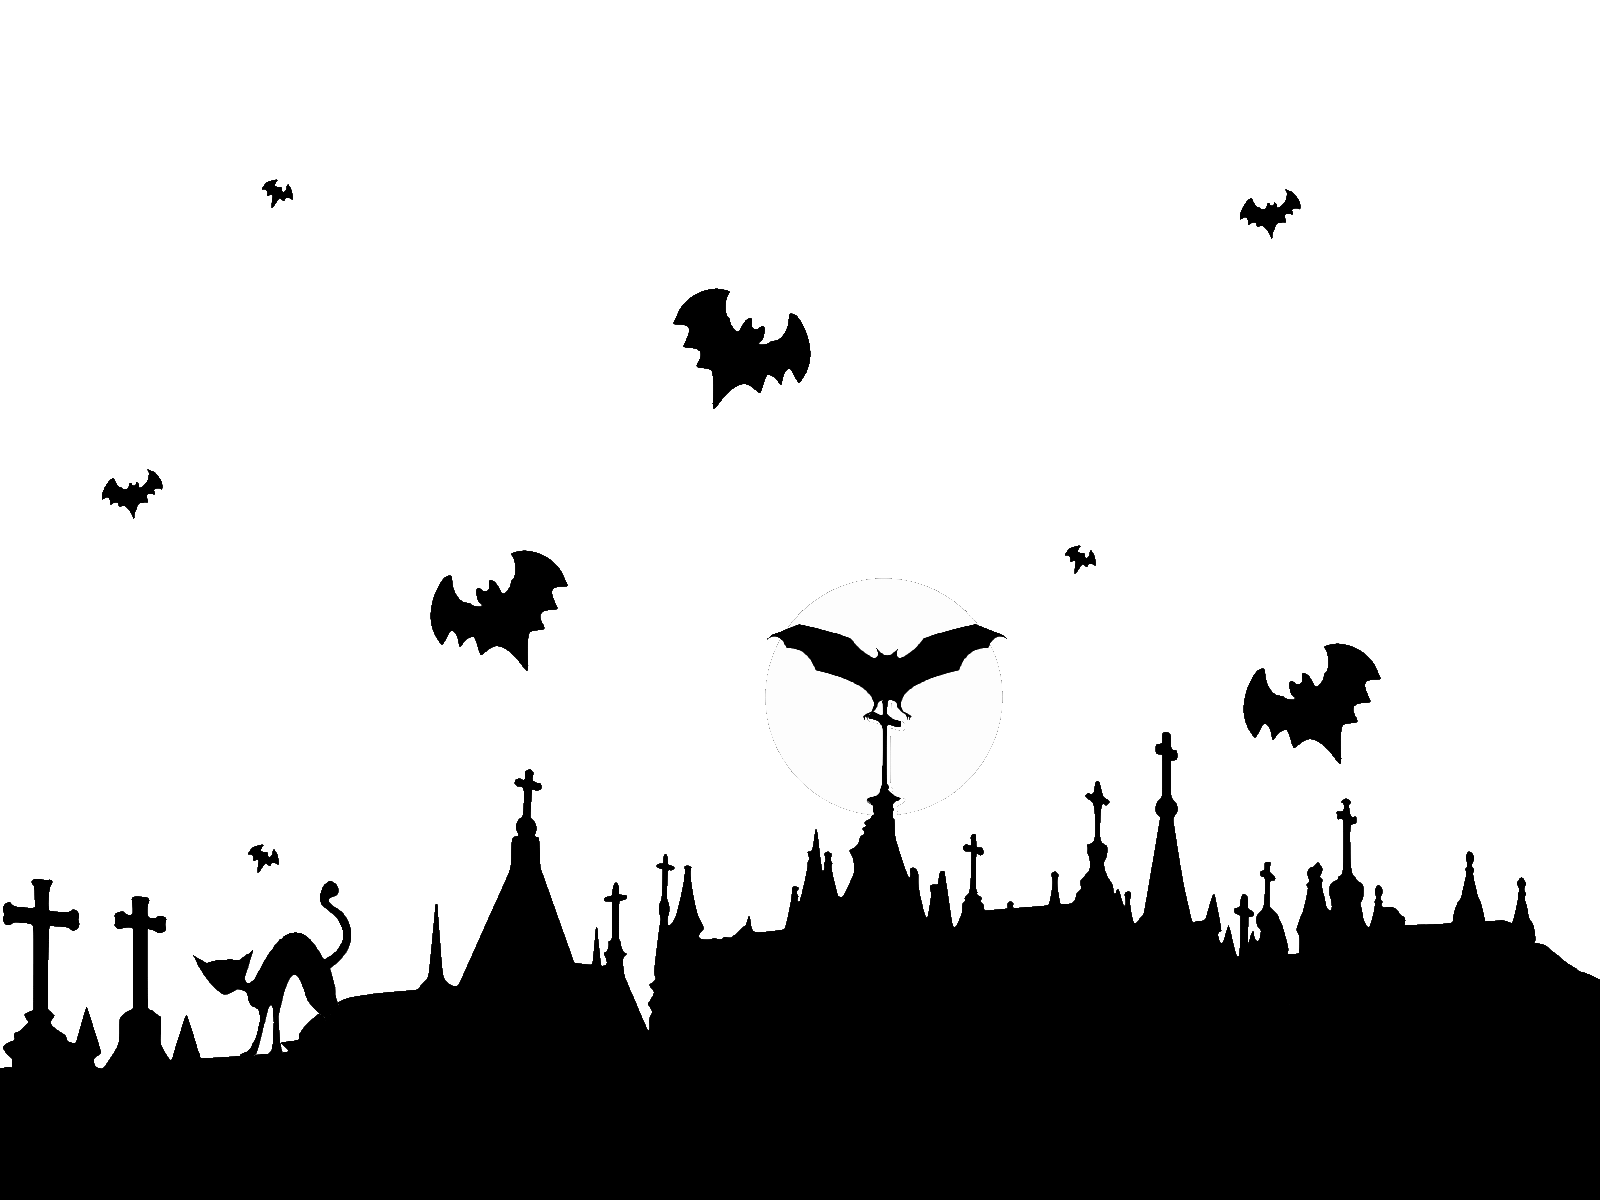 Grave yard png. Graveyard and flying bats